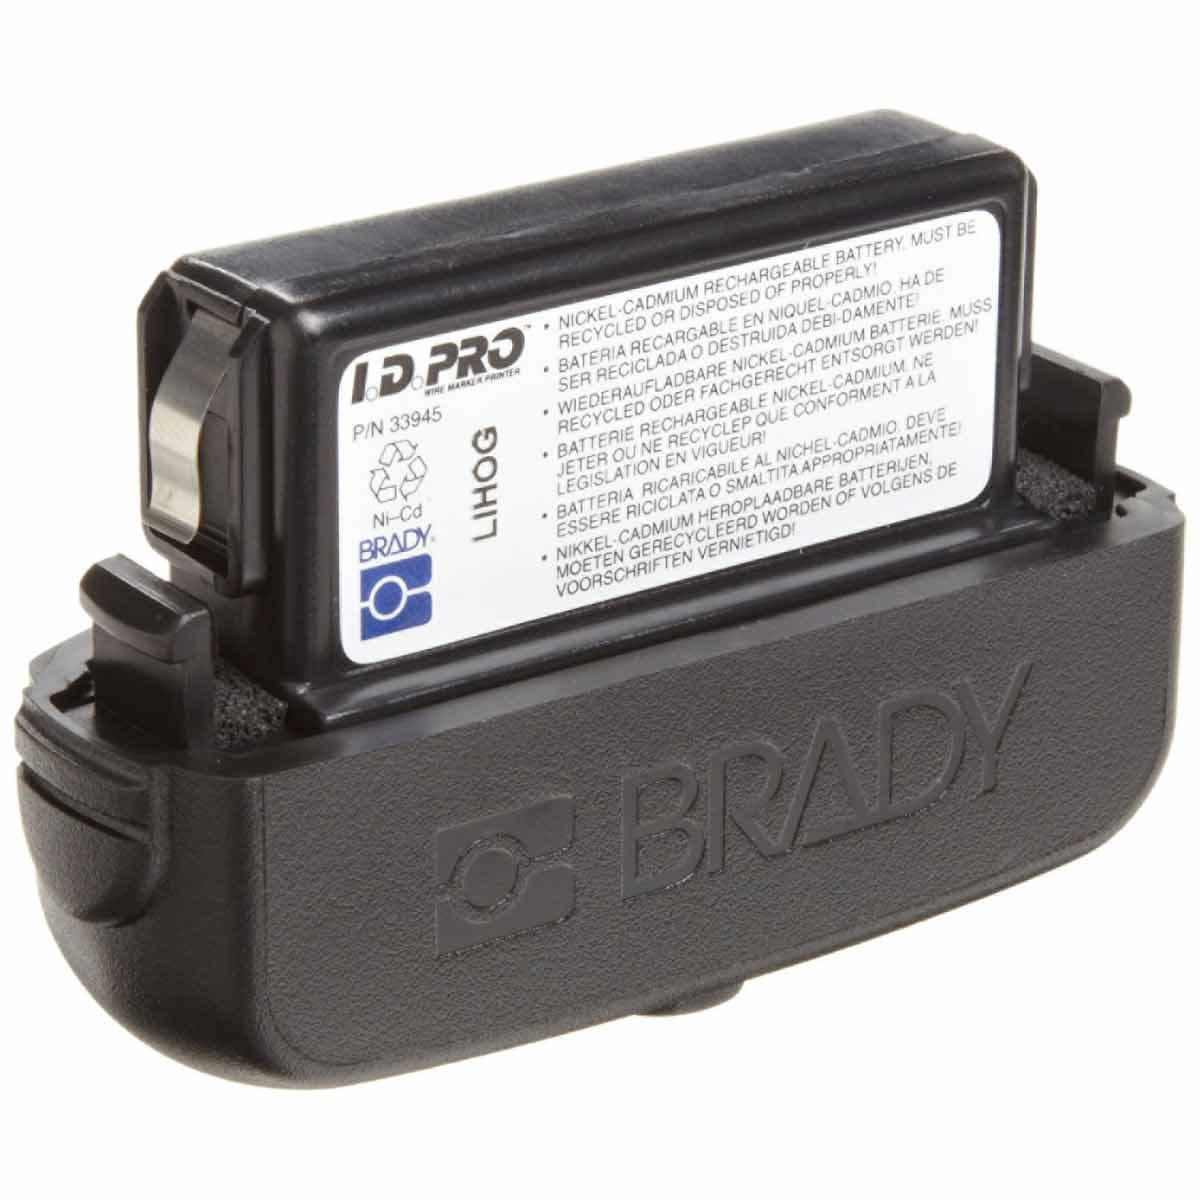 BRADY IDPRO-BP Battery Pack